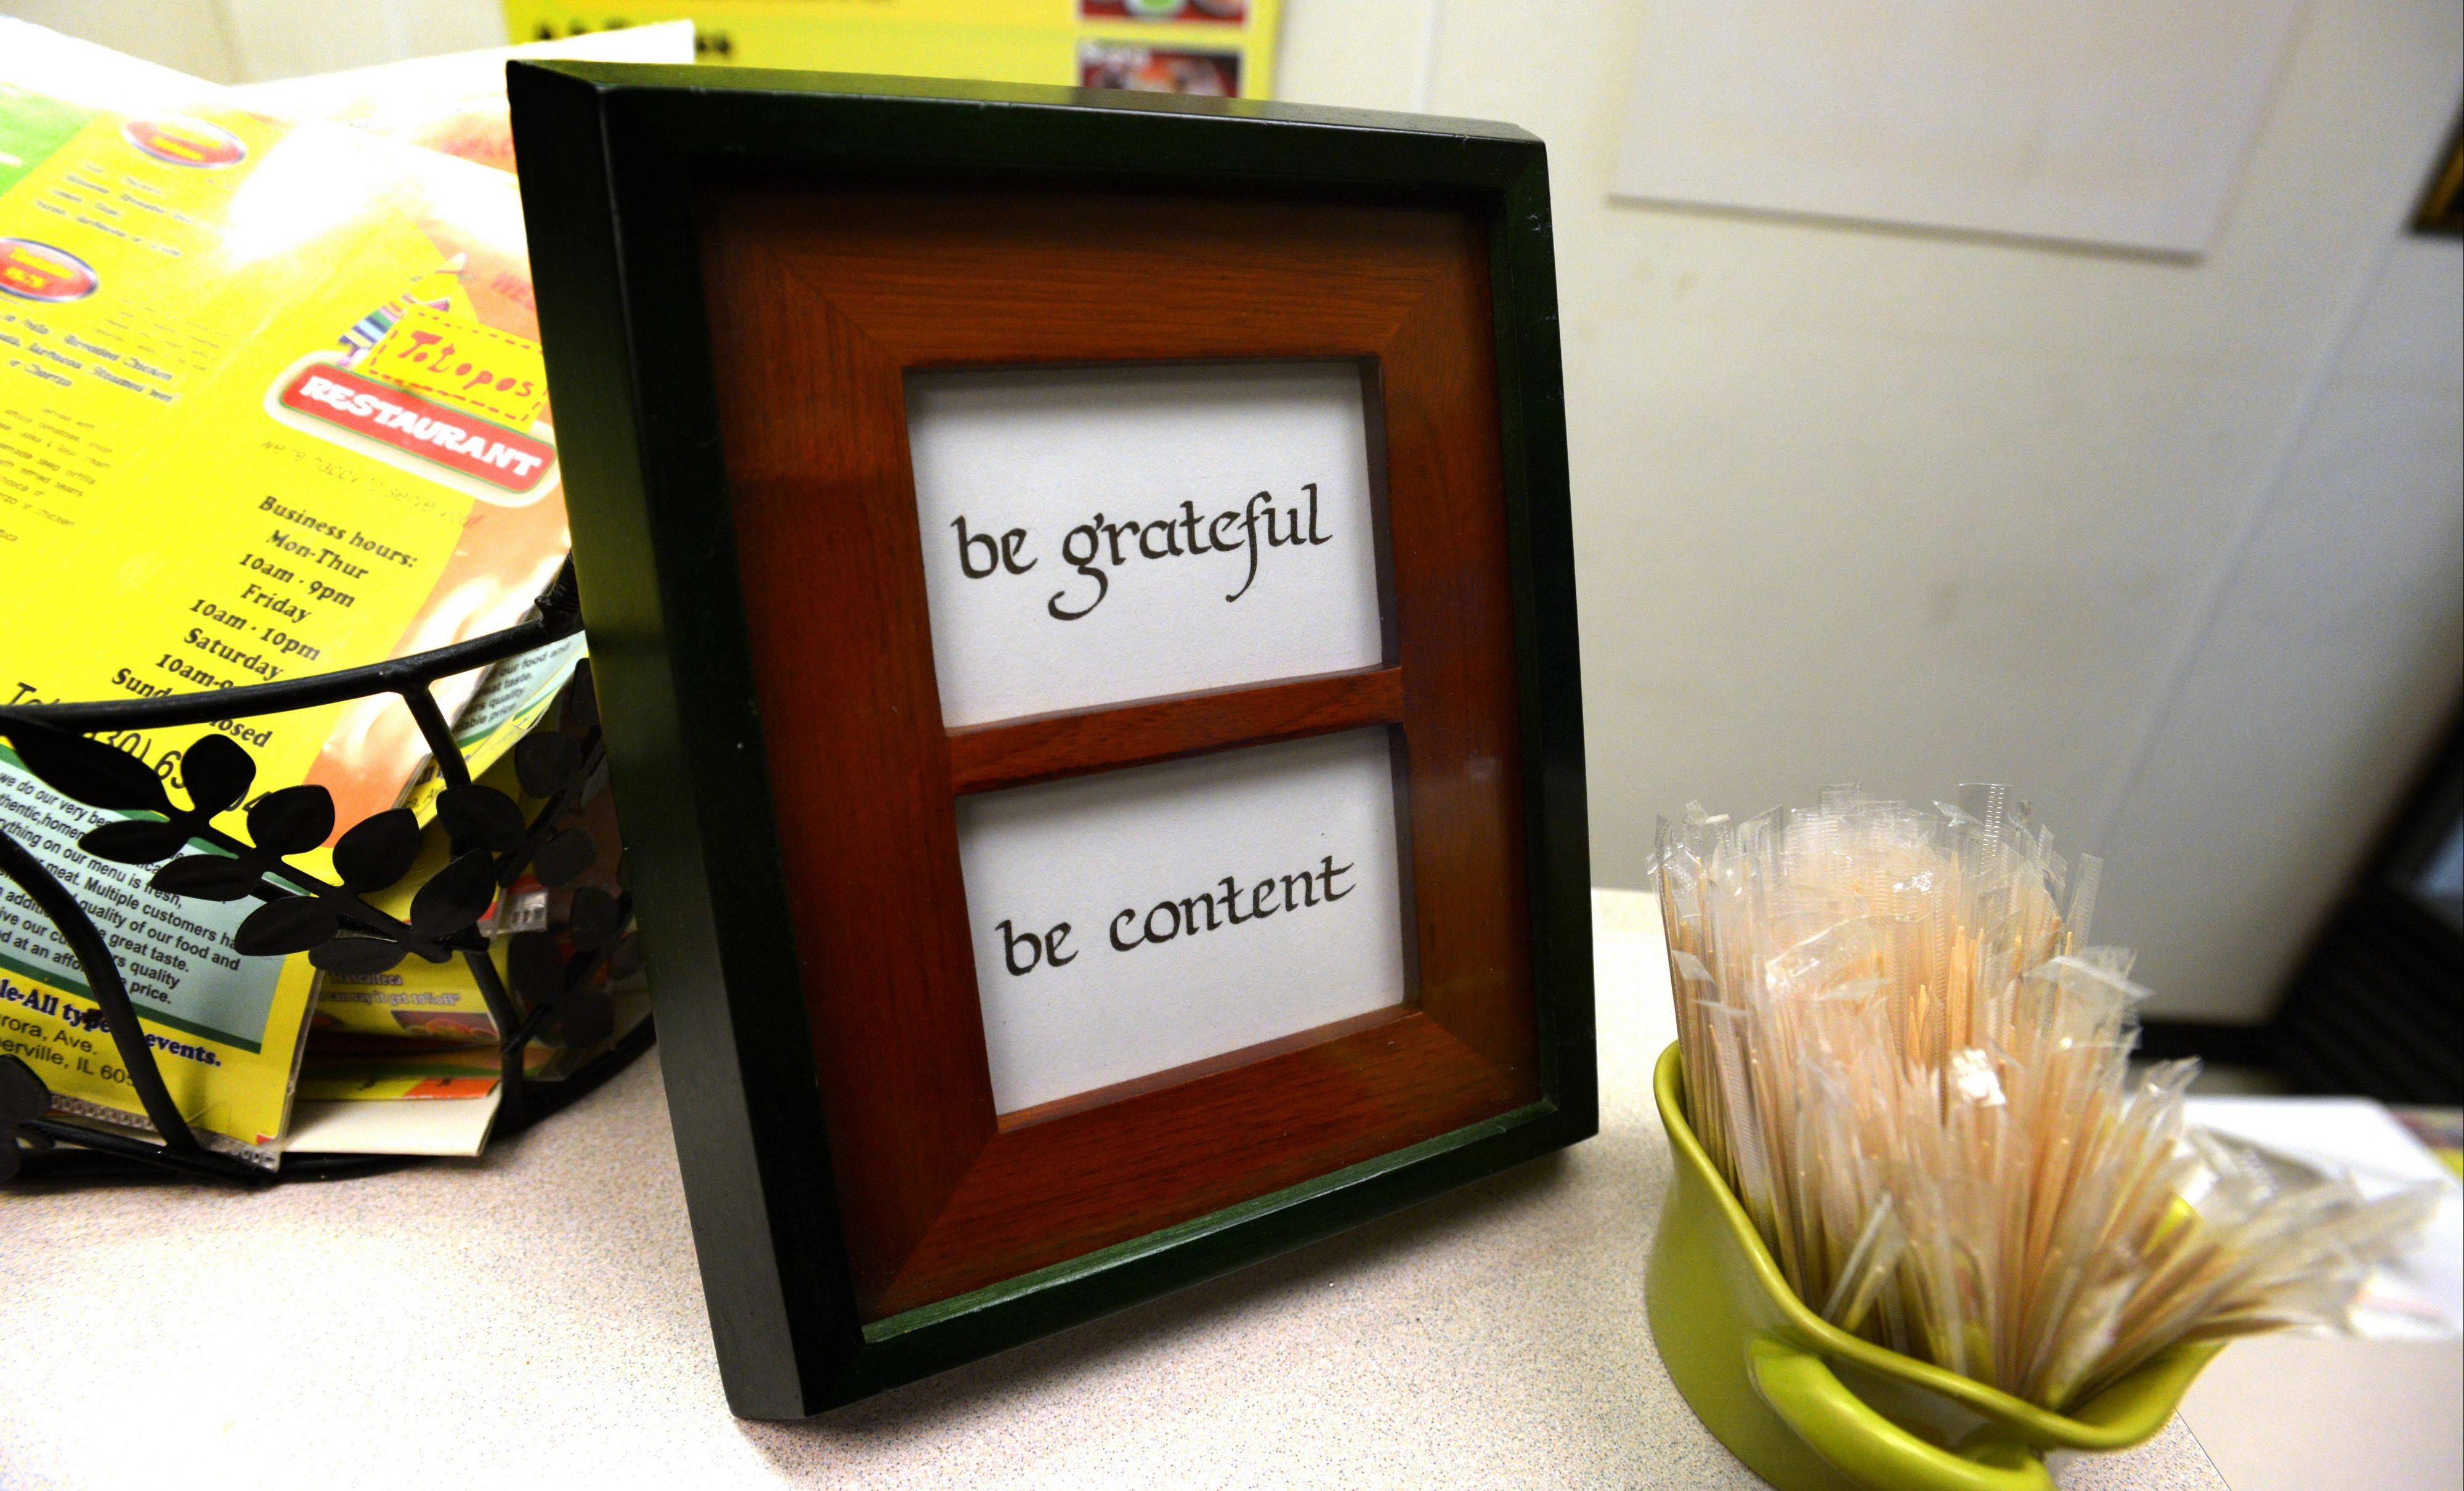 Cortes lives by these simple words -- be grateful, be content. She has them posted in her restaurant for others to learn from.